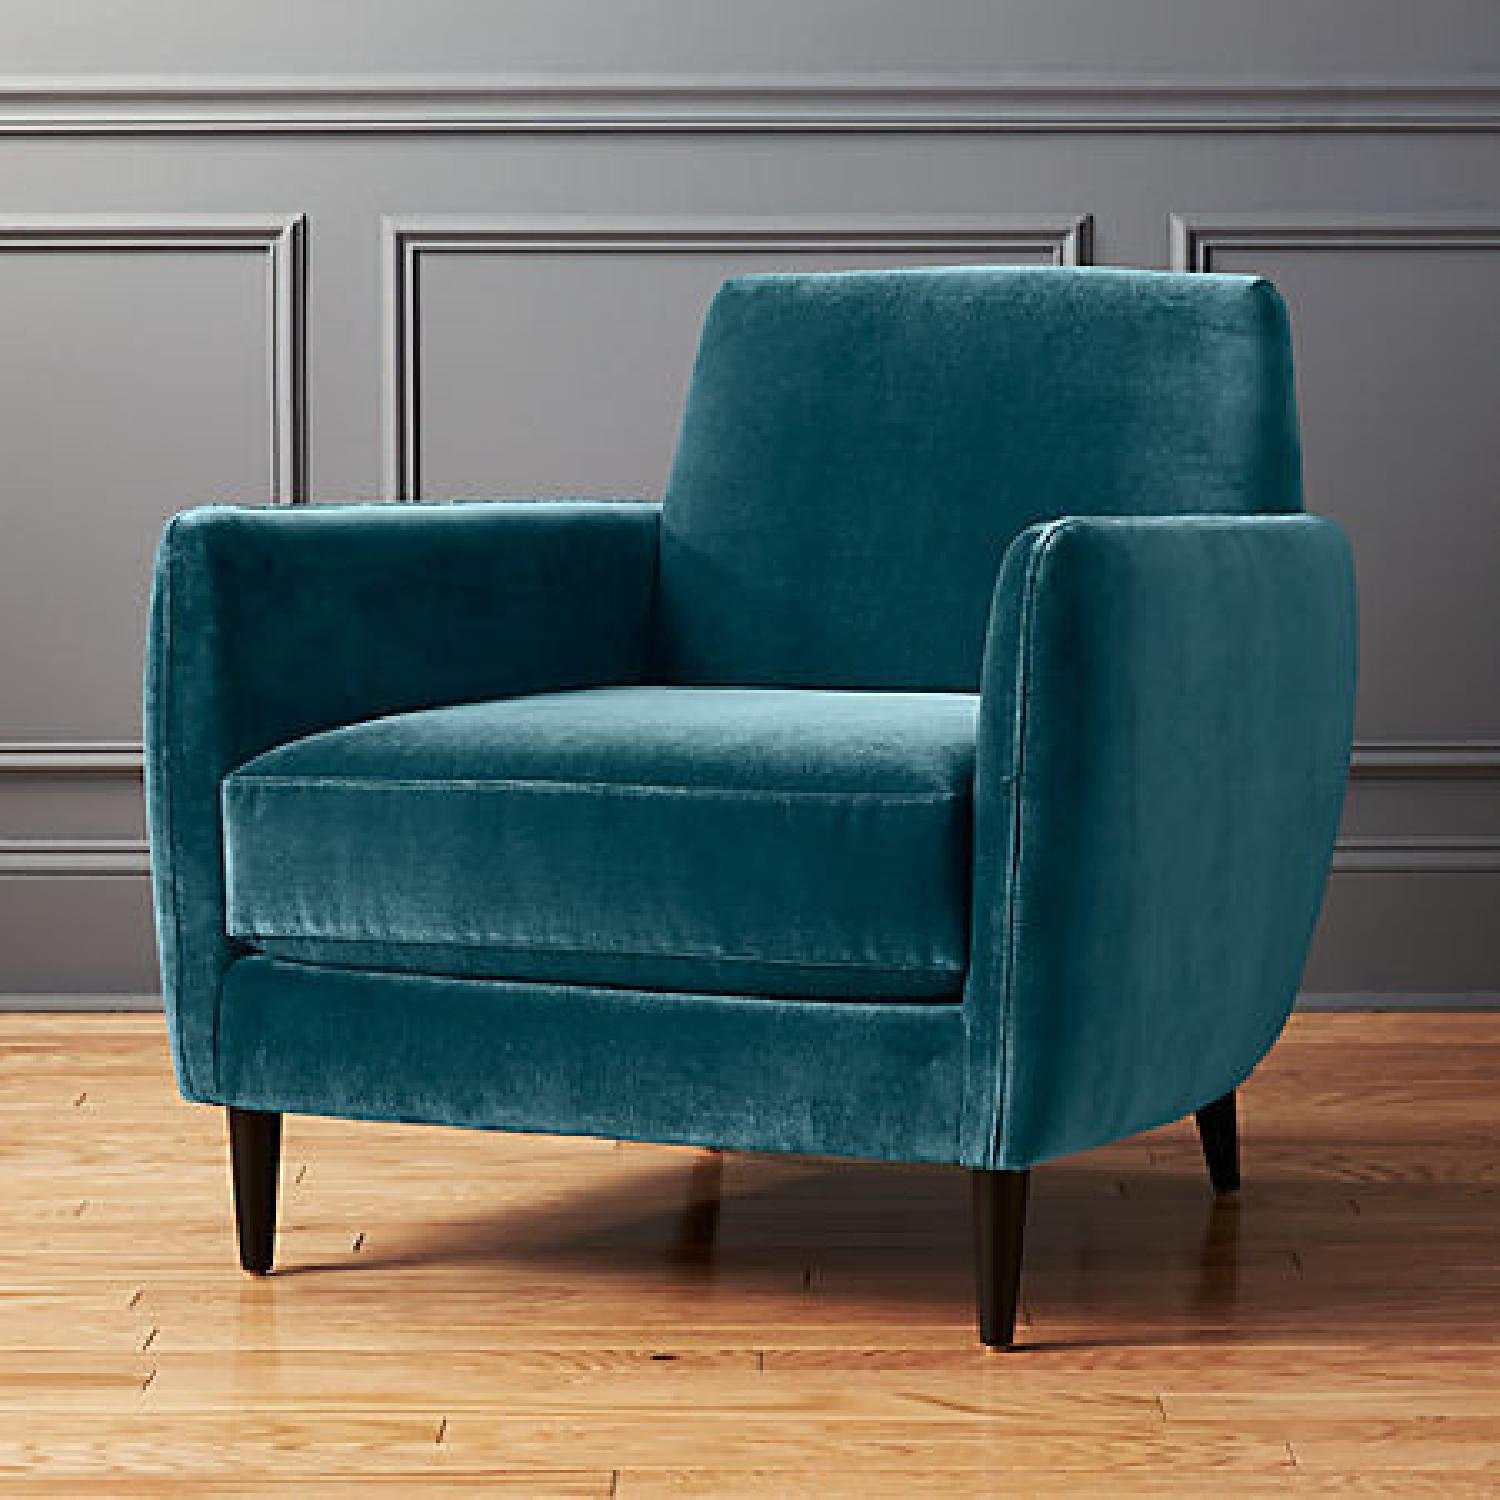 CB2 Parlour Chair in Cyan (Blue) Velvet - image-7